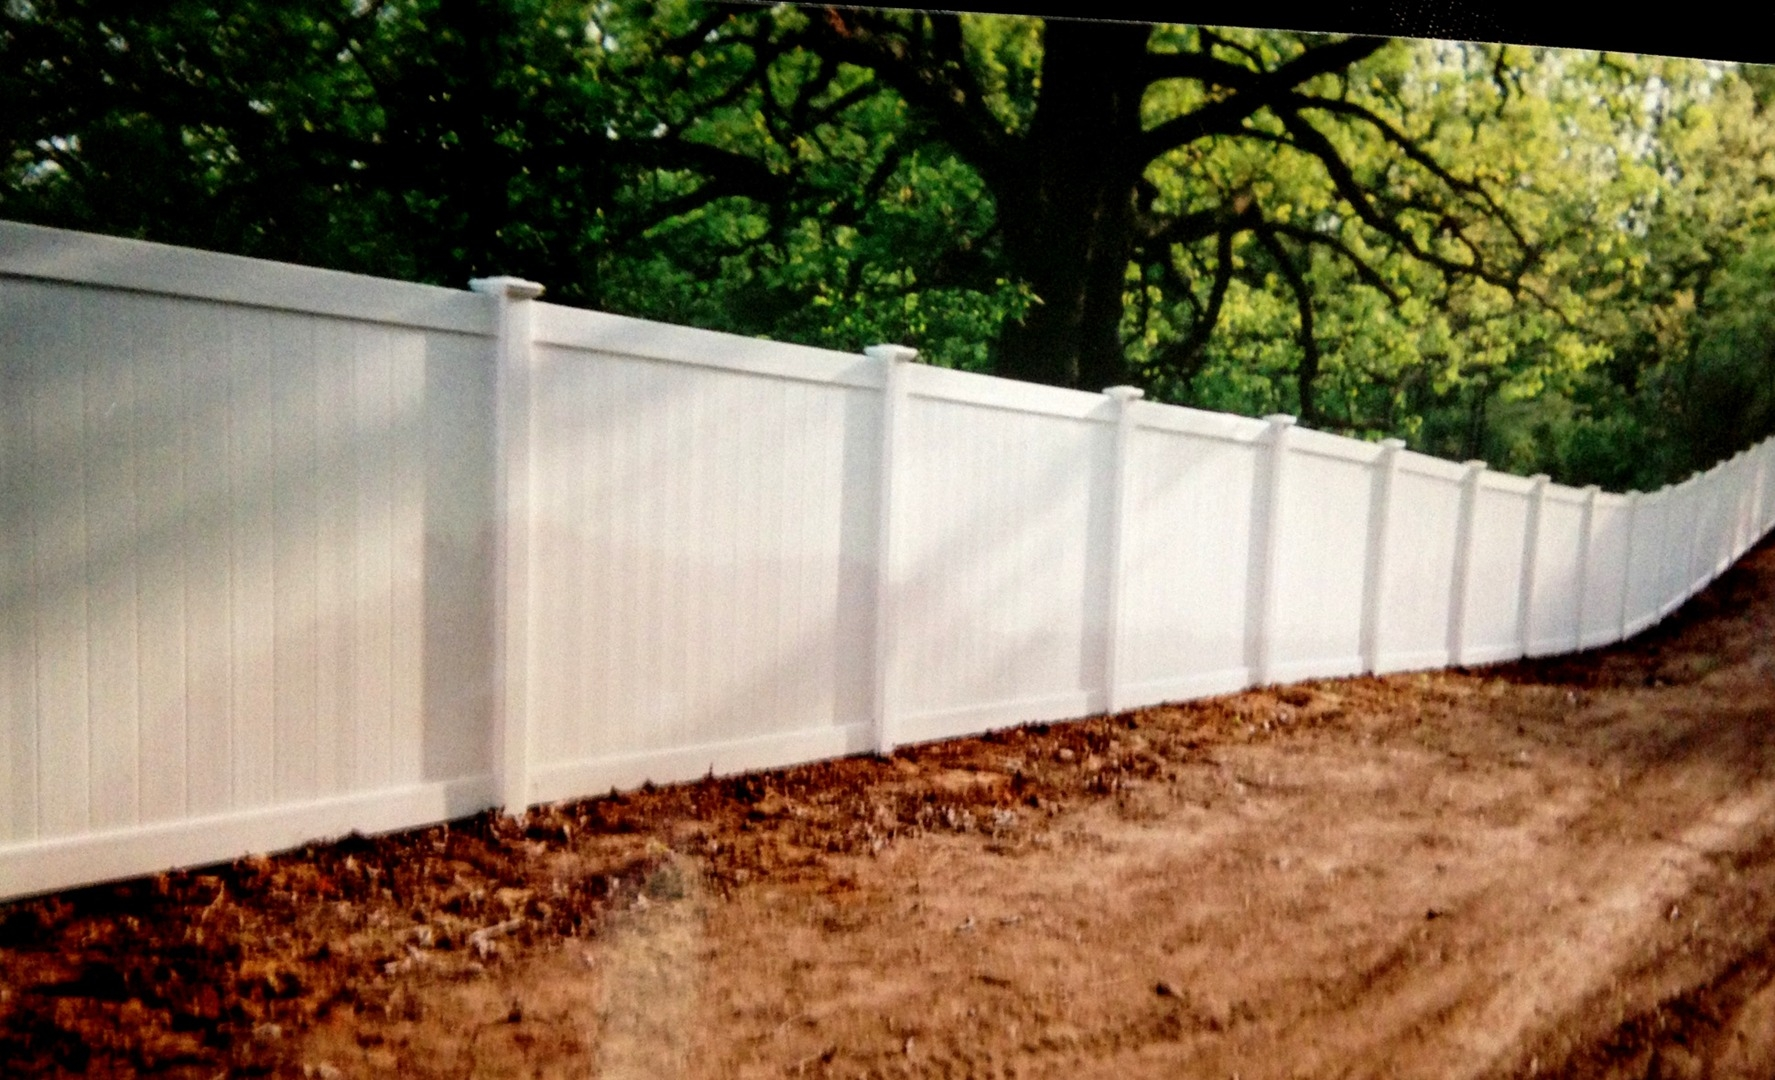 Privacy Fence Commercial Fencing Company Gurnee Zion Libertyville